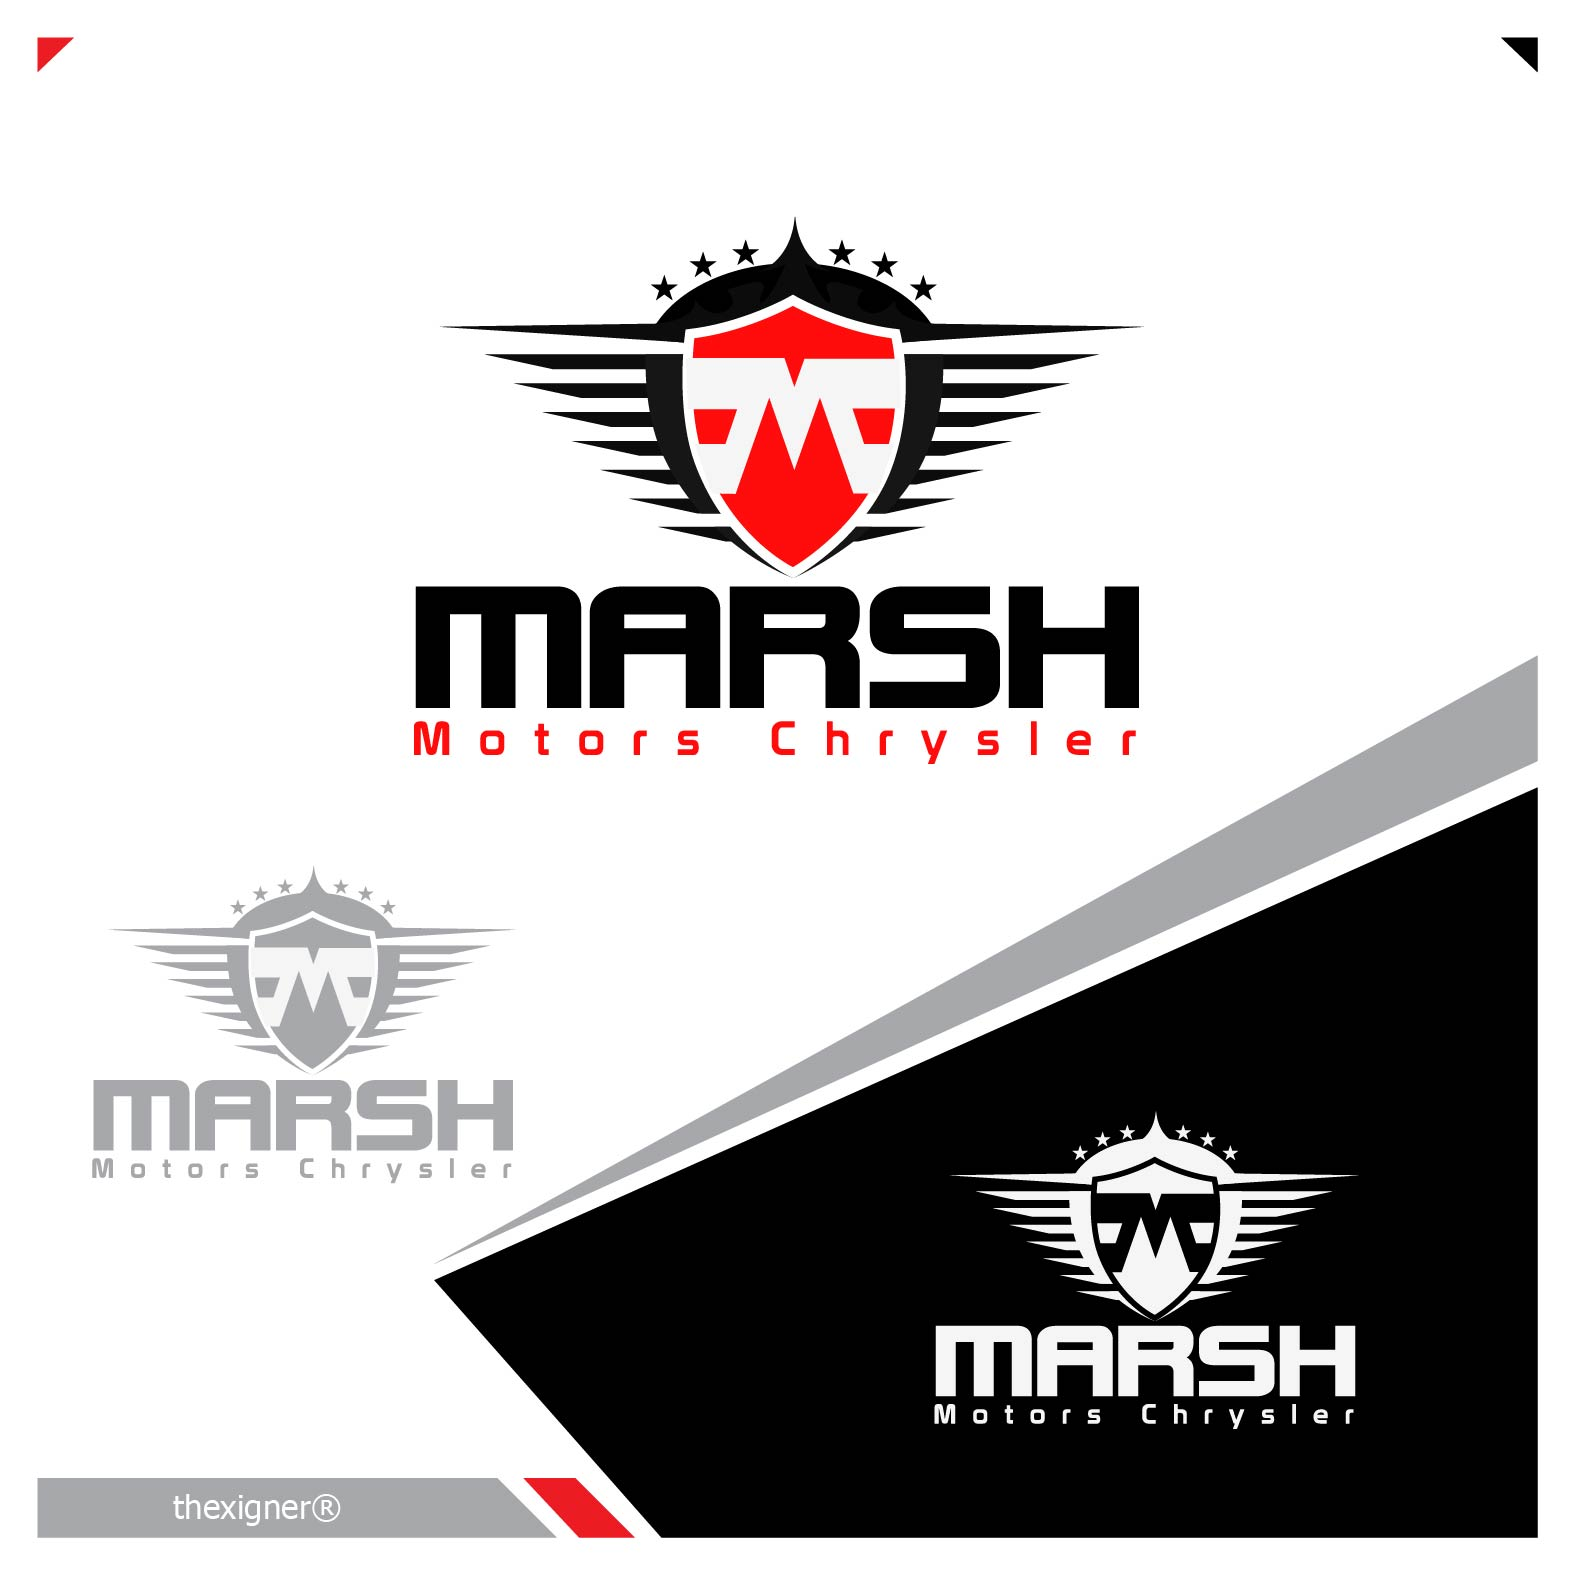 Logo Design by lagalag - Entry No. 19 in the Logo Design Contest Marsh Motors Chrysler Logo Design.